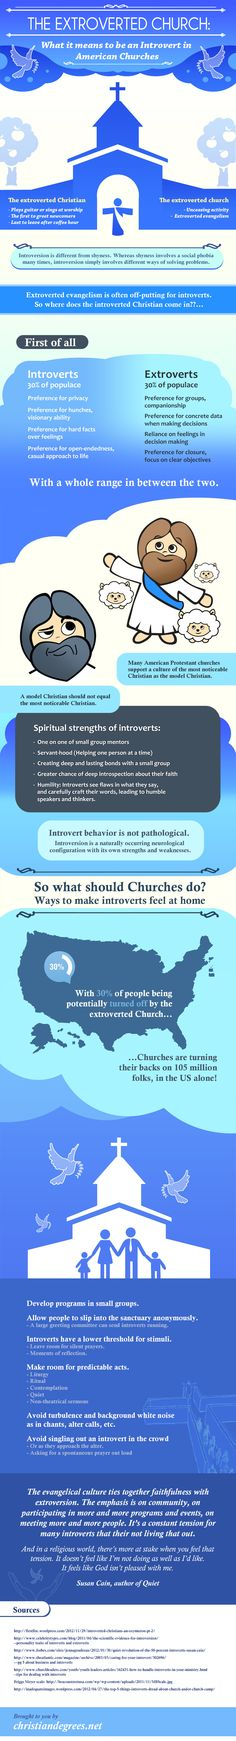 The Extroverted Church